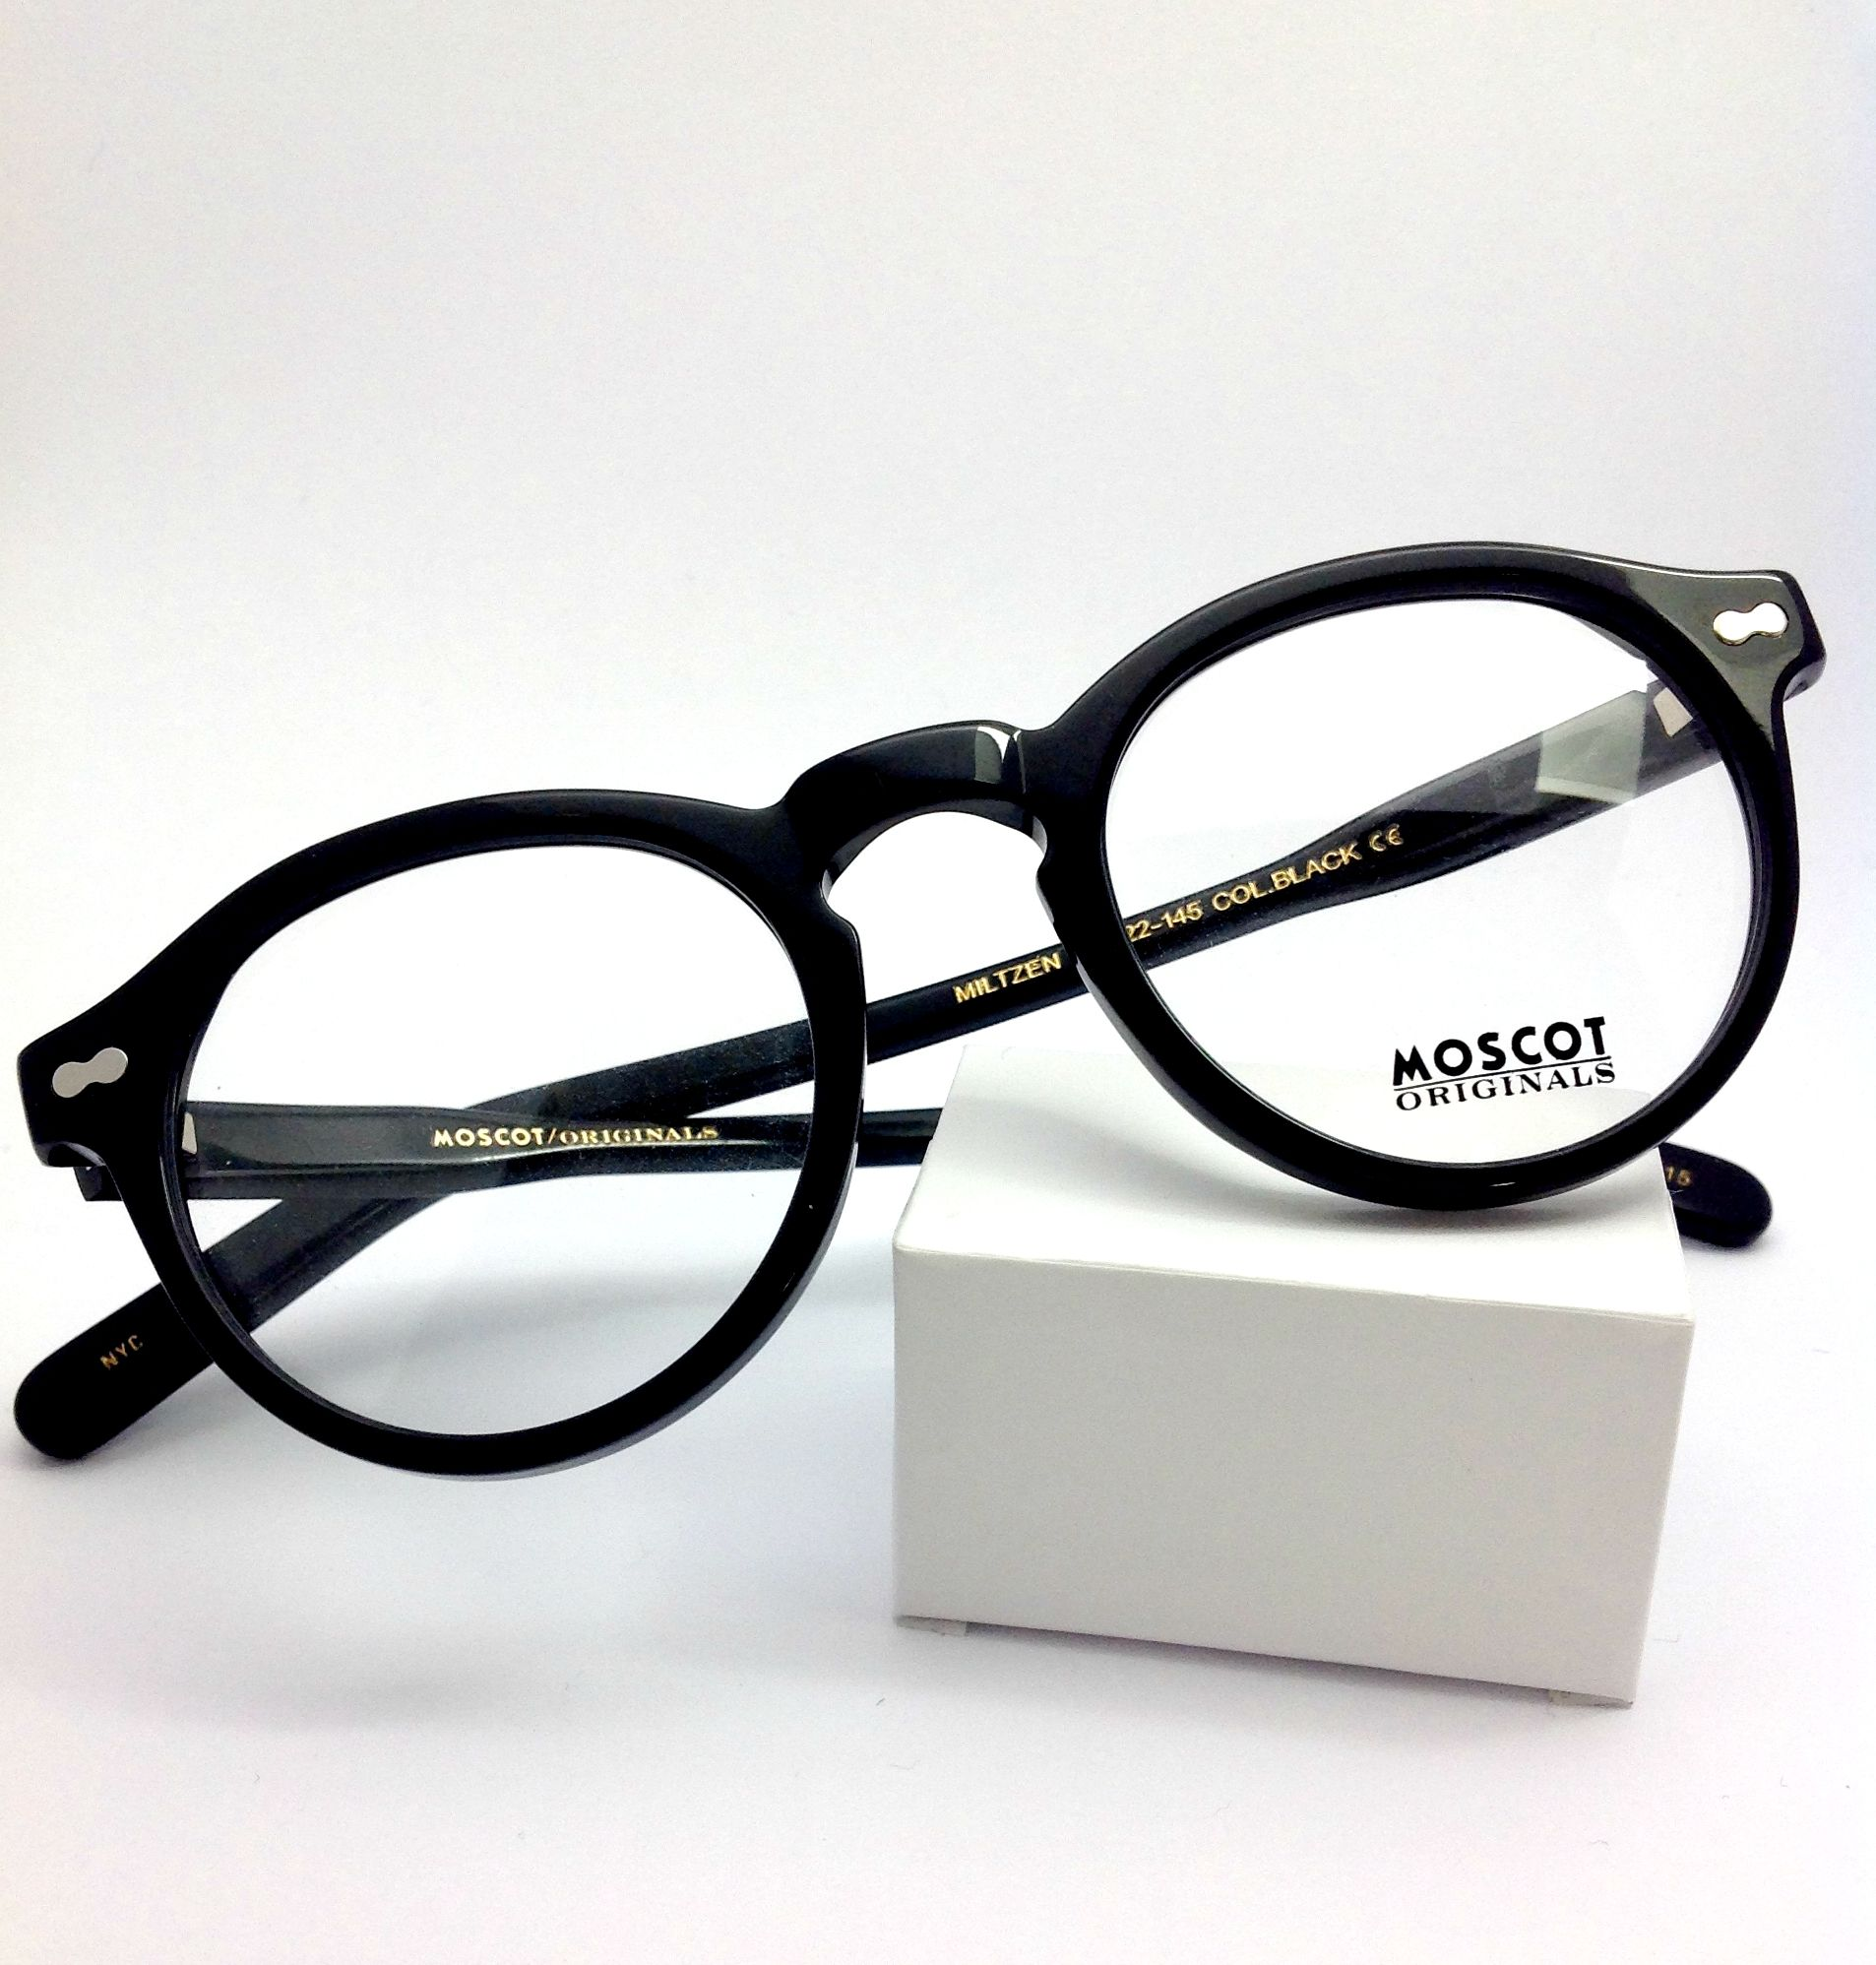 99354054a94 Go a little bit different with this strong Moscot Original frame Miltzen in  black. size 46x22. Available at www.linklaterwarren.co.uk  Glasses  moscot  ...